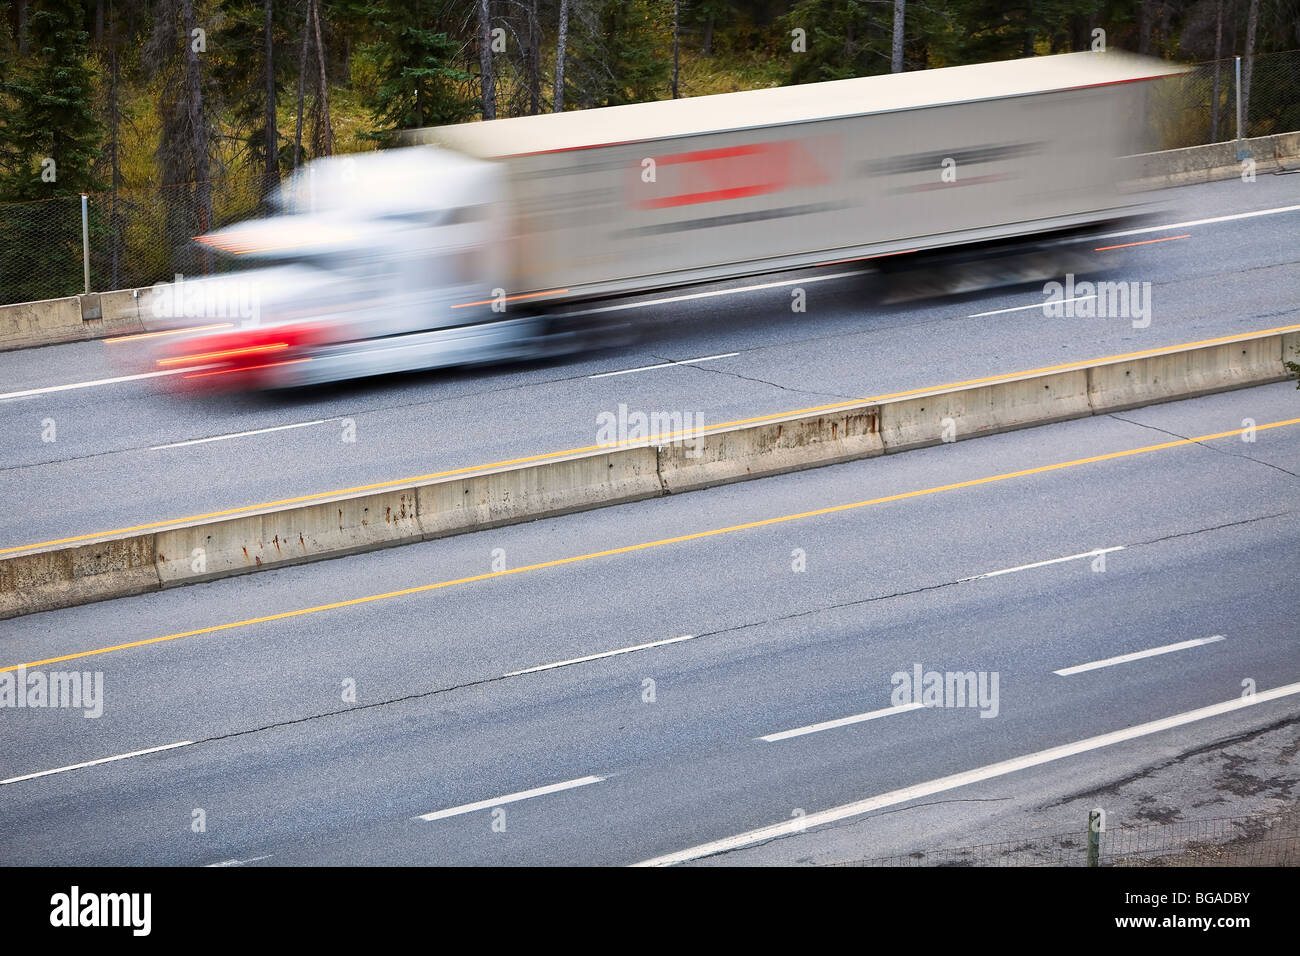 Motion blurred image of a transport truck on the Trans-Canada Highway, Banff National Park, Alberta, Canada. - Stock Image